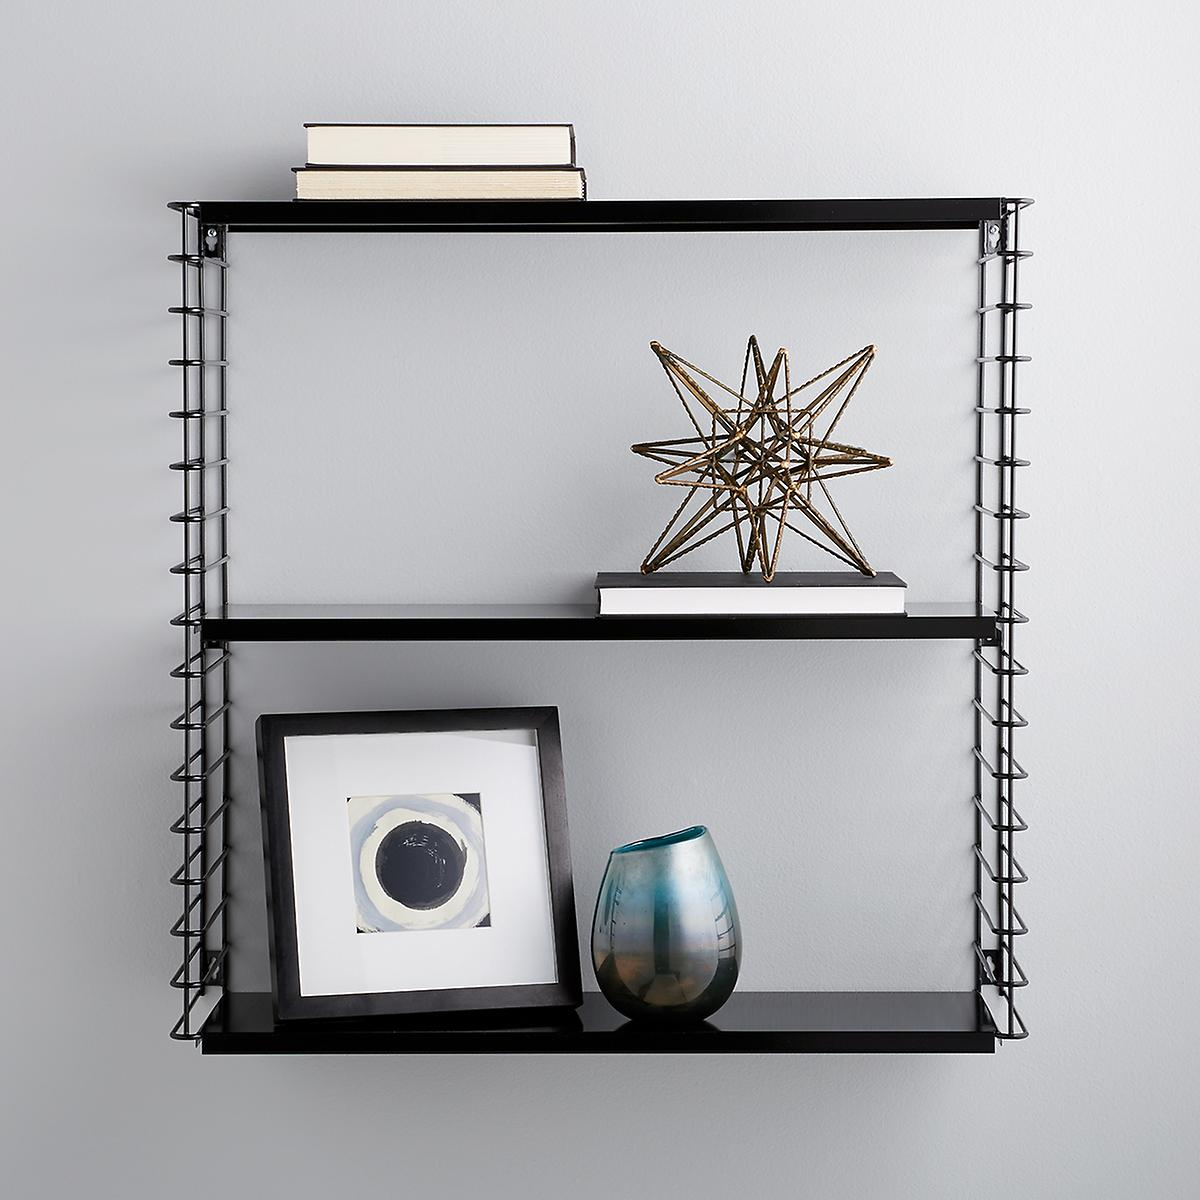 black metal libro wall shelf the container storage cube floating fold away desk white countertop ideas contemporary glass shelving unit standard walk closet size kitchen cabinets